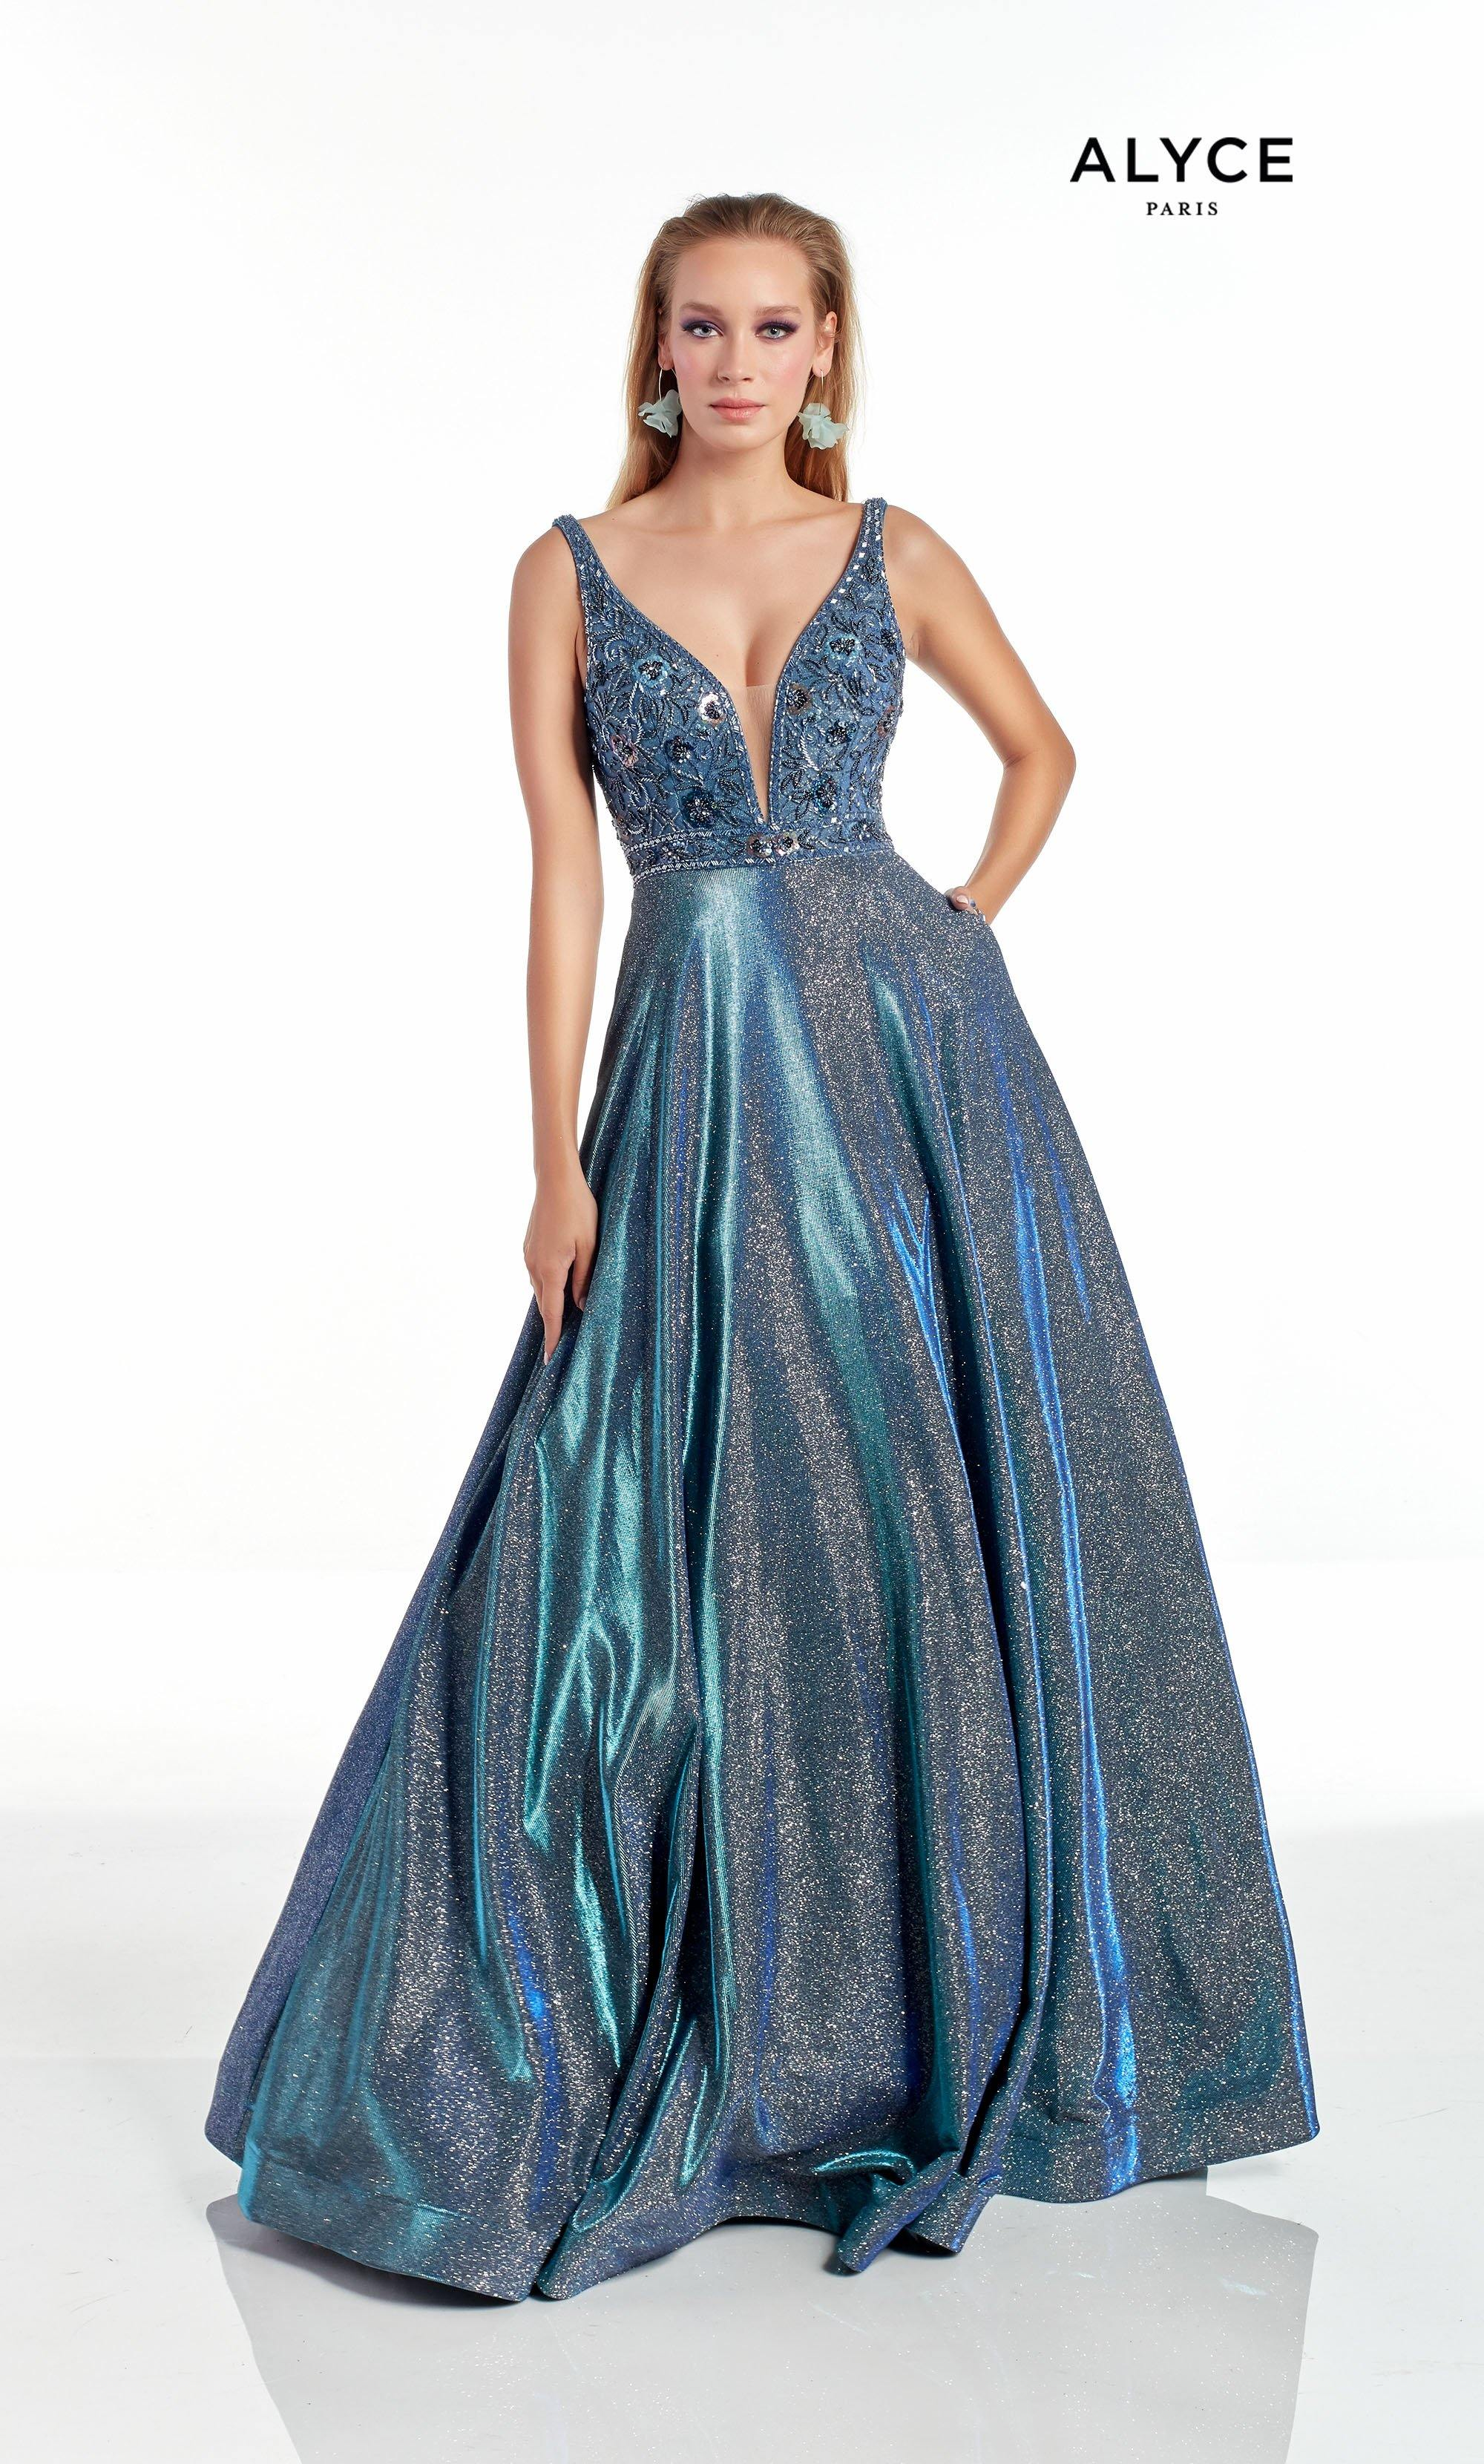 Iridescent Blue formal A line dress with a plunging neckline and beaded bodice